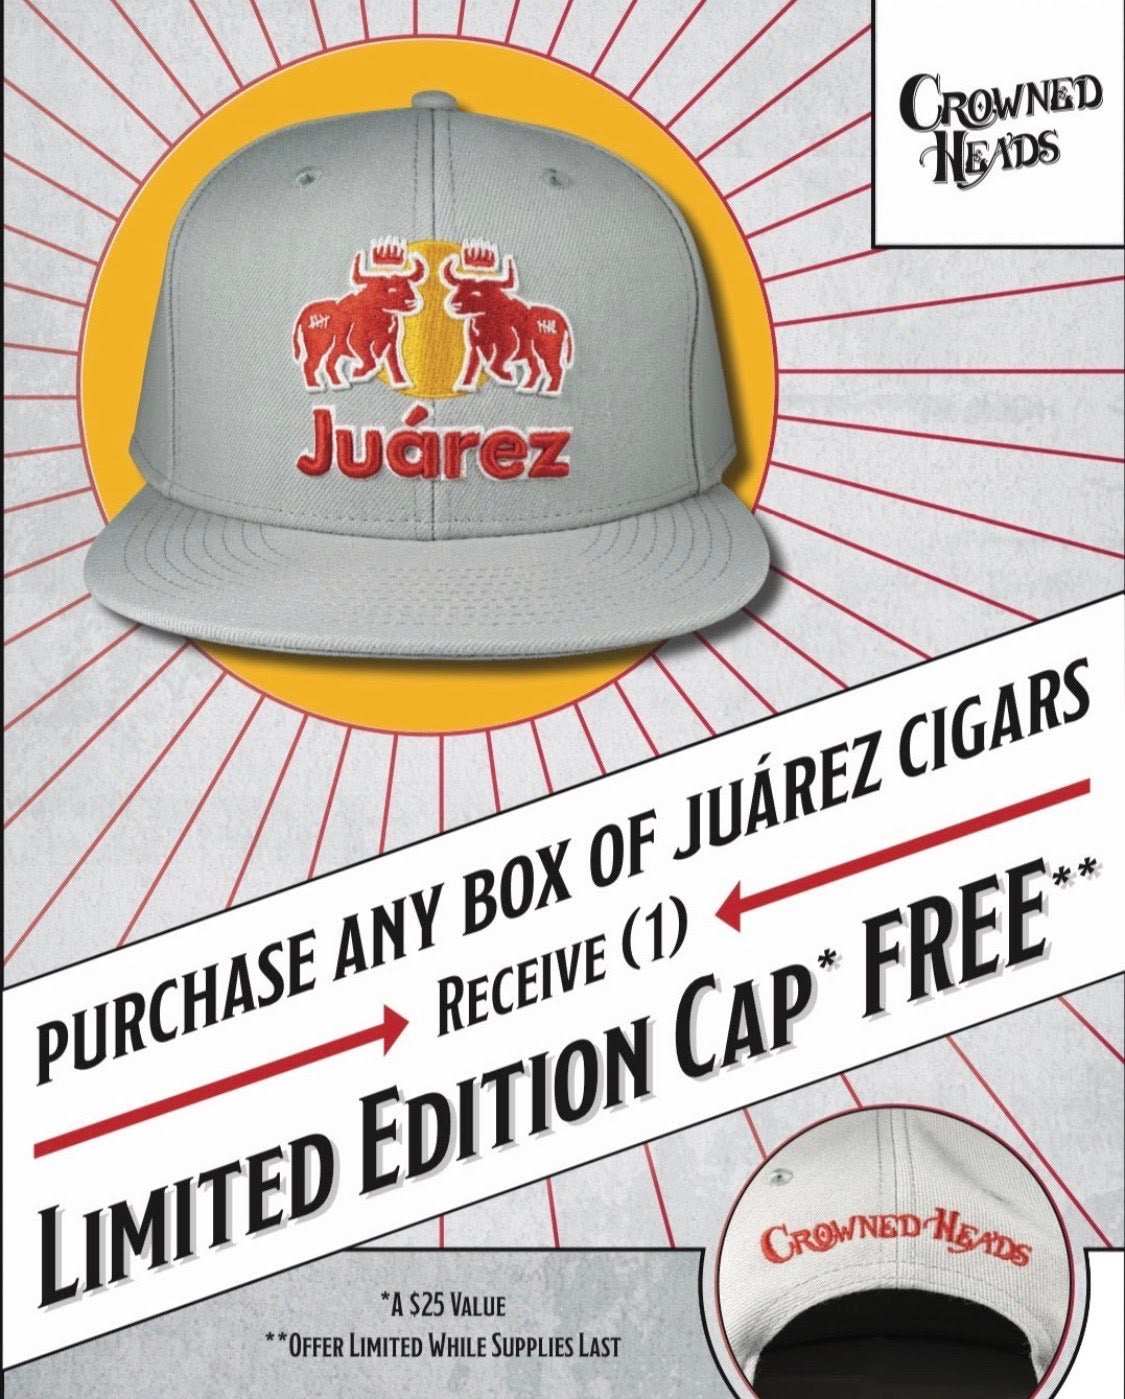 Crowned Heads - Juarez Limited Edition Hat